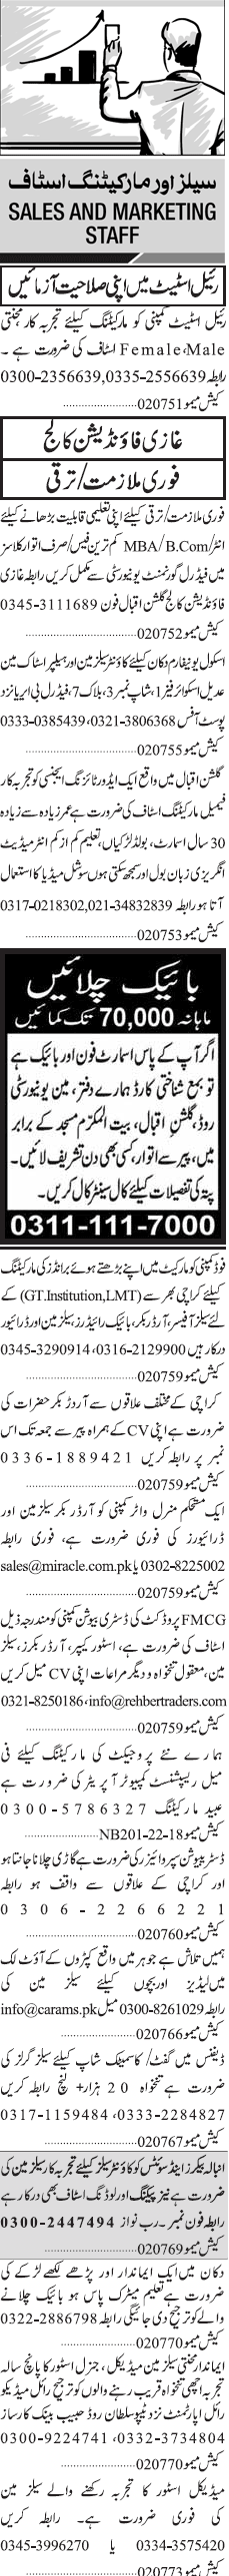 Real Estate Marketing Staff, Call Center Staff Wanted